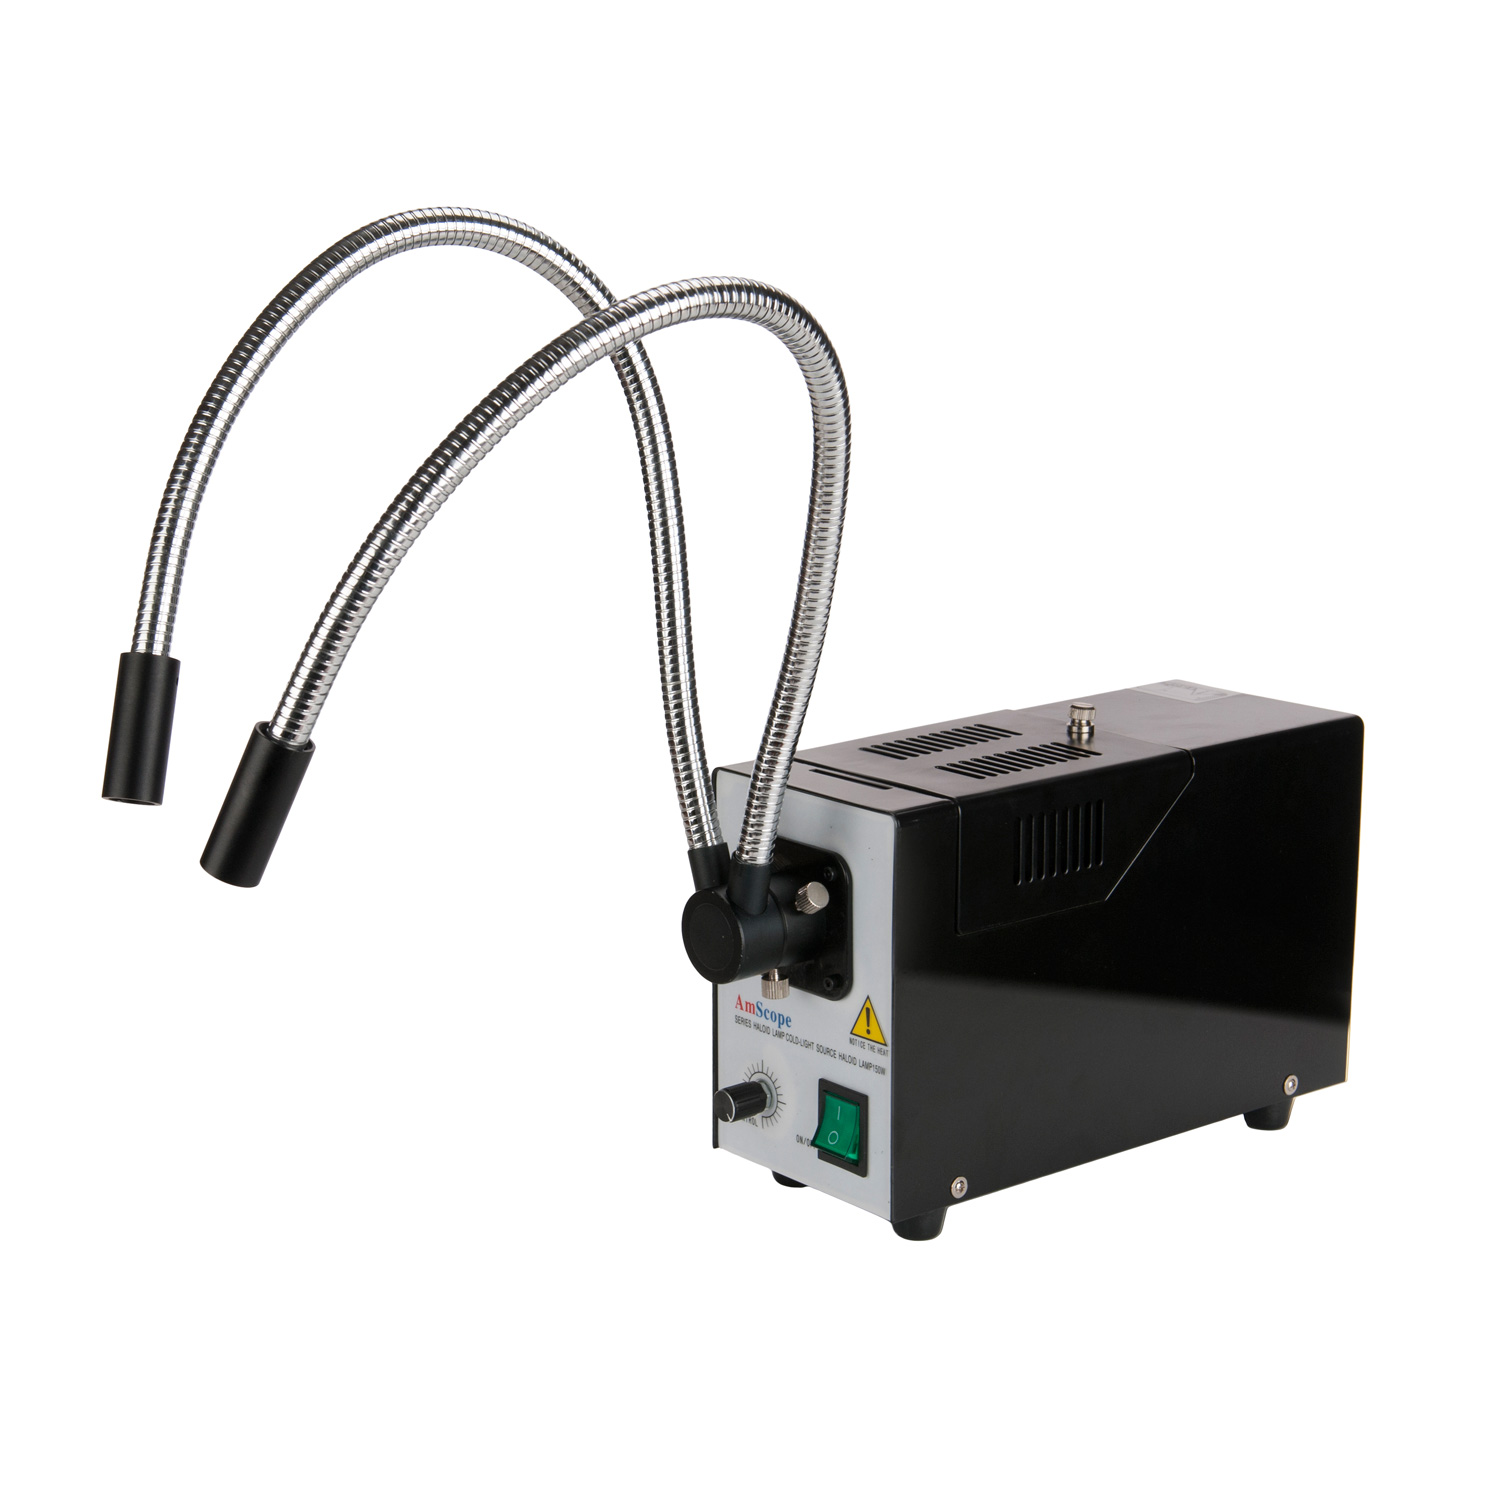 AmScope 150W Fiber Optic Dual Gooseneck Illuminator for M...